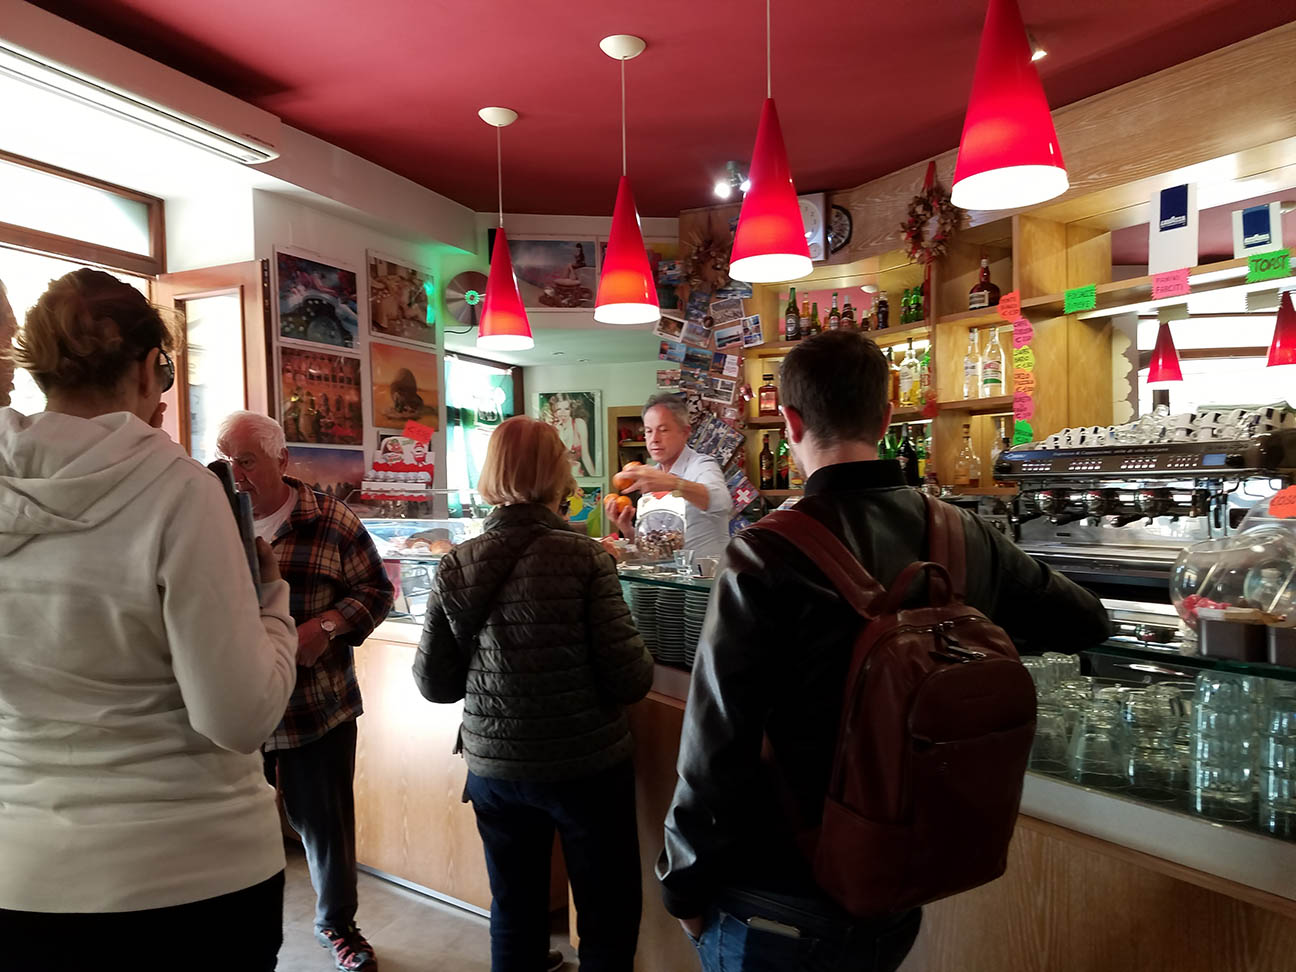 Mario, the owner of Mama's Café in Urbino, Italy, whips up several customers